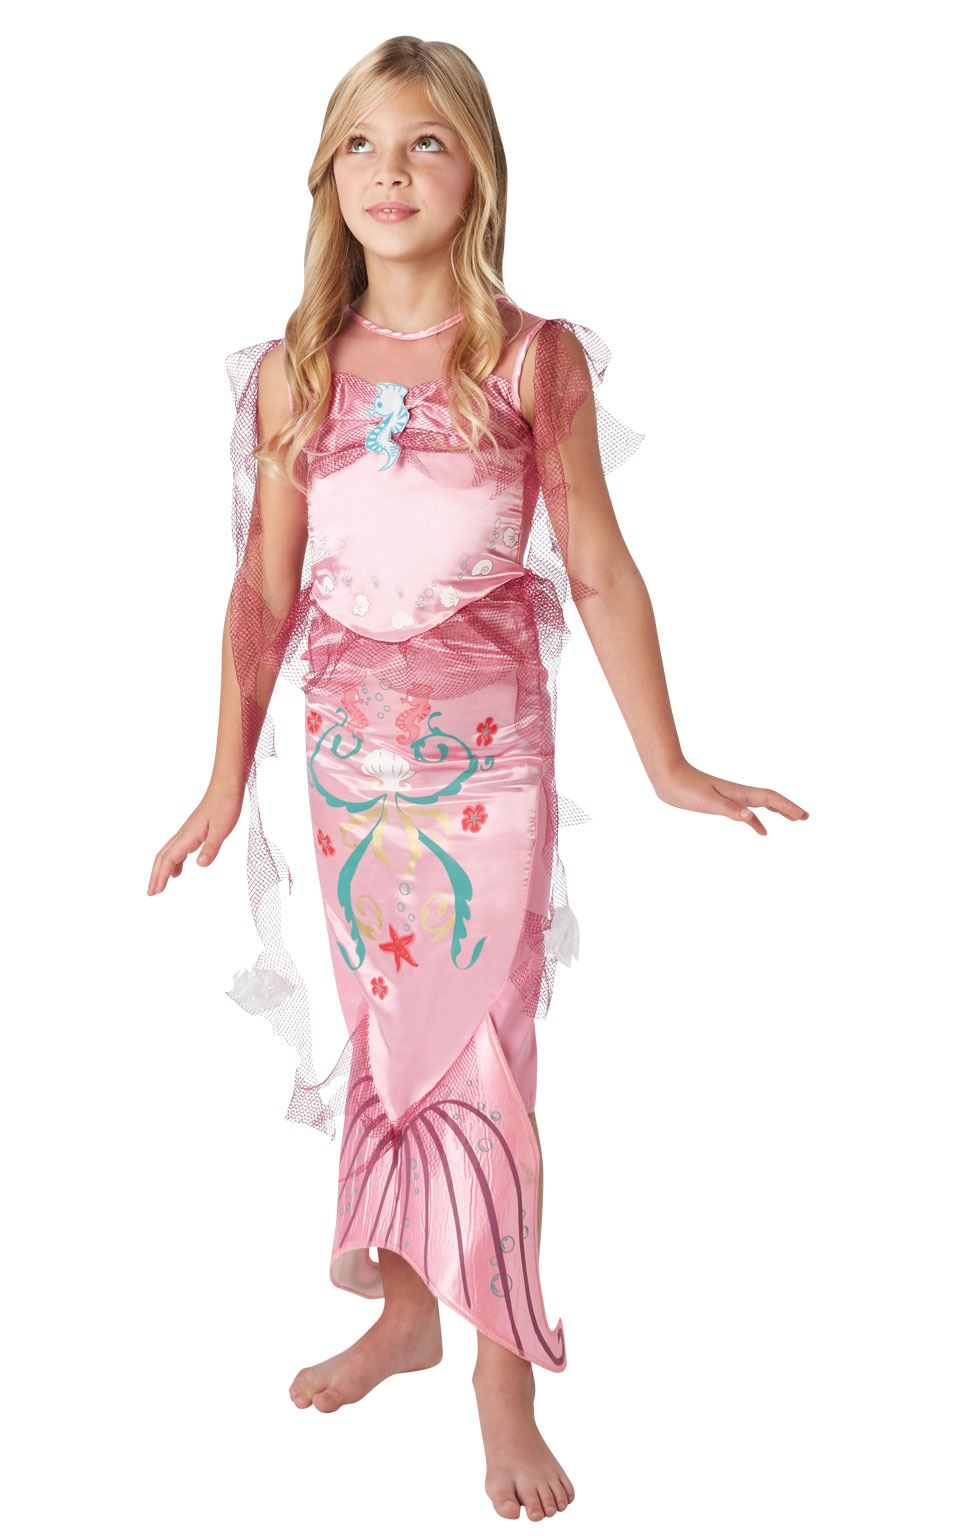 Girls-Pink-Little-Mermaid-Costume-Fairy-Tale-Fancy-  sc 1 st  eBay & Details about Girls Pink Little Mermaid Costume Fairy Tale Fancy Dress Child Princess Outfit